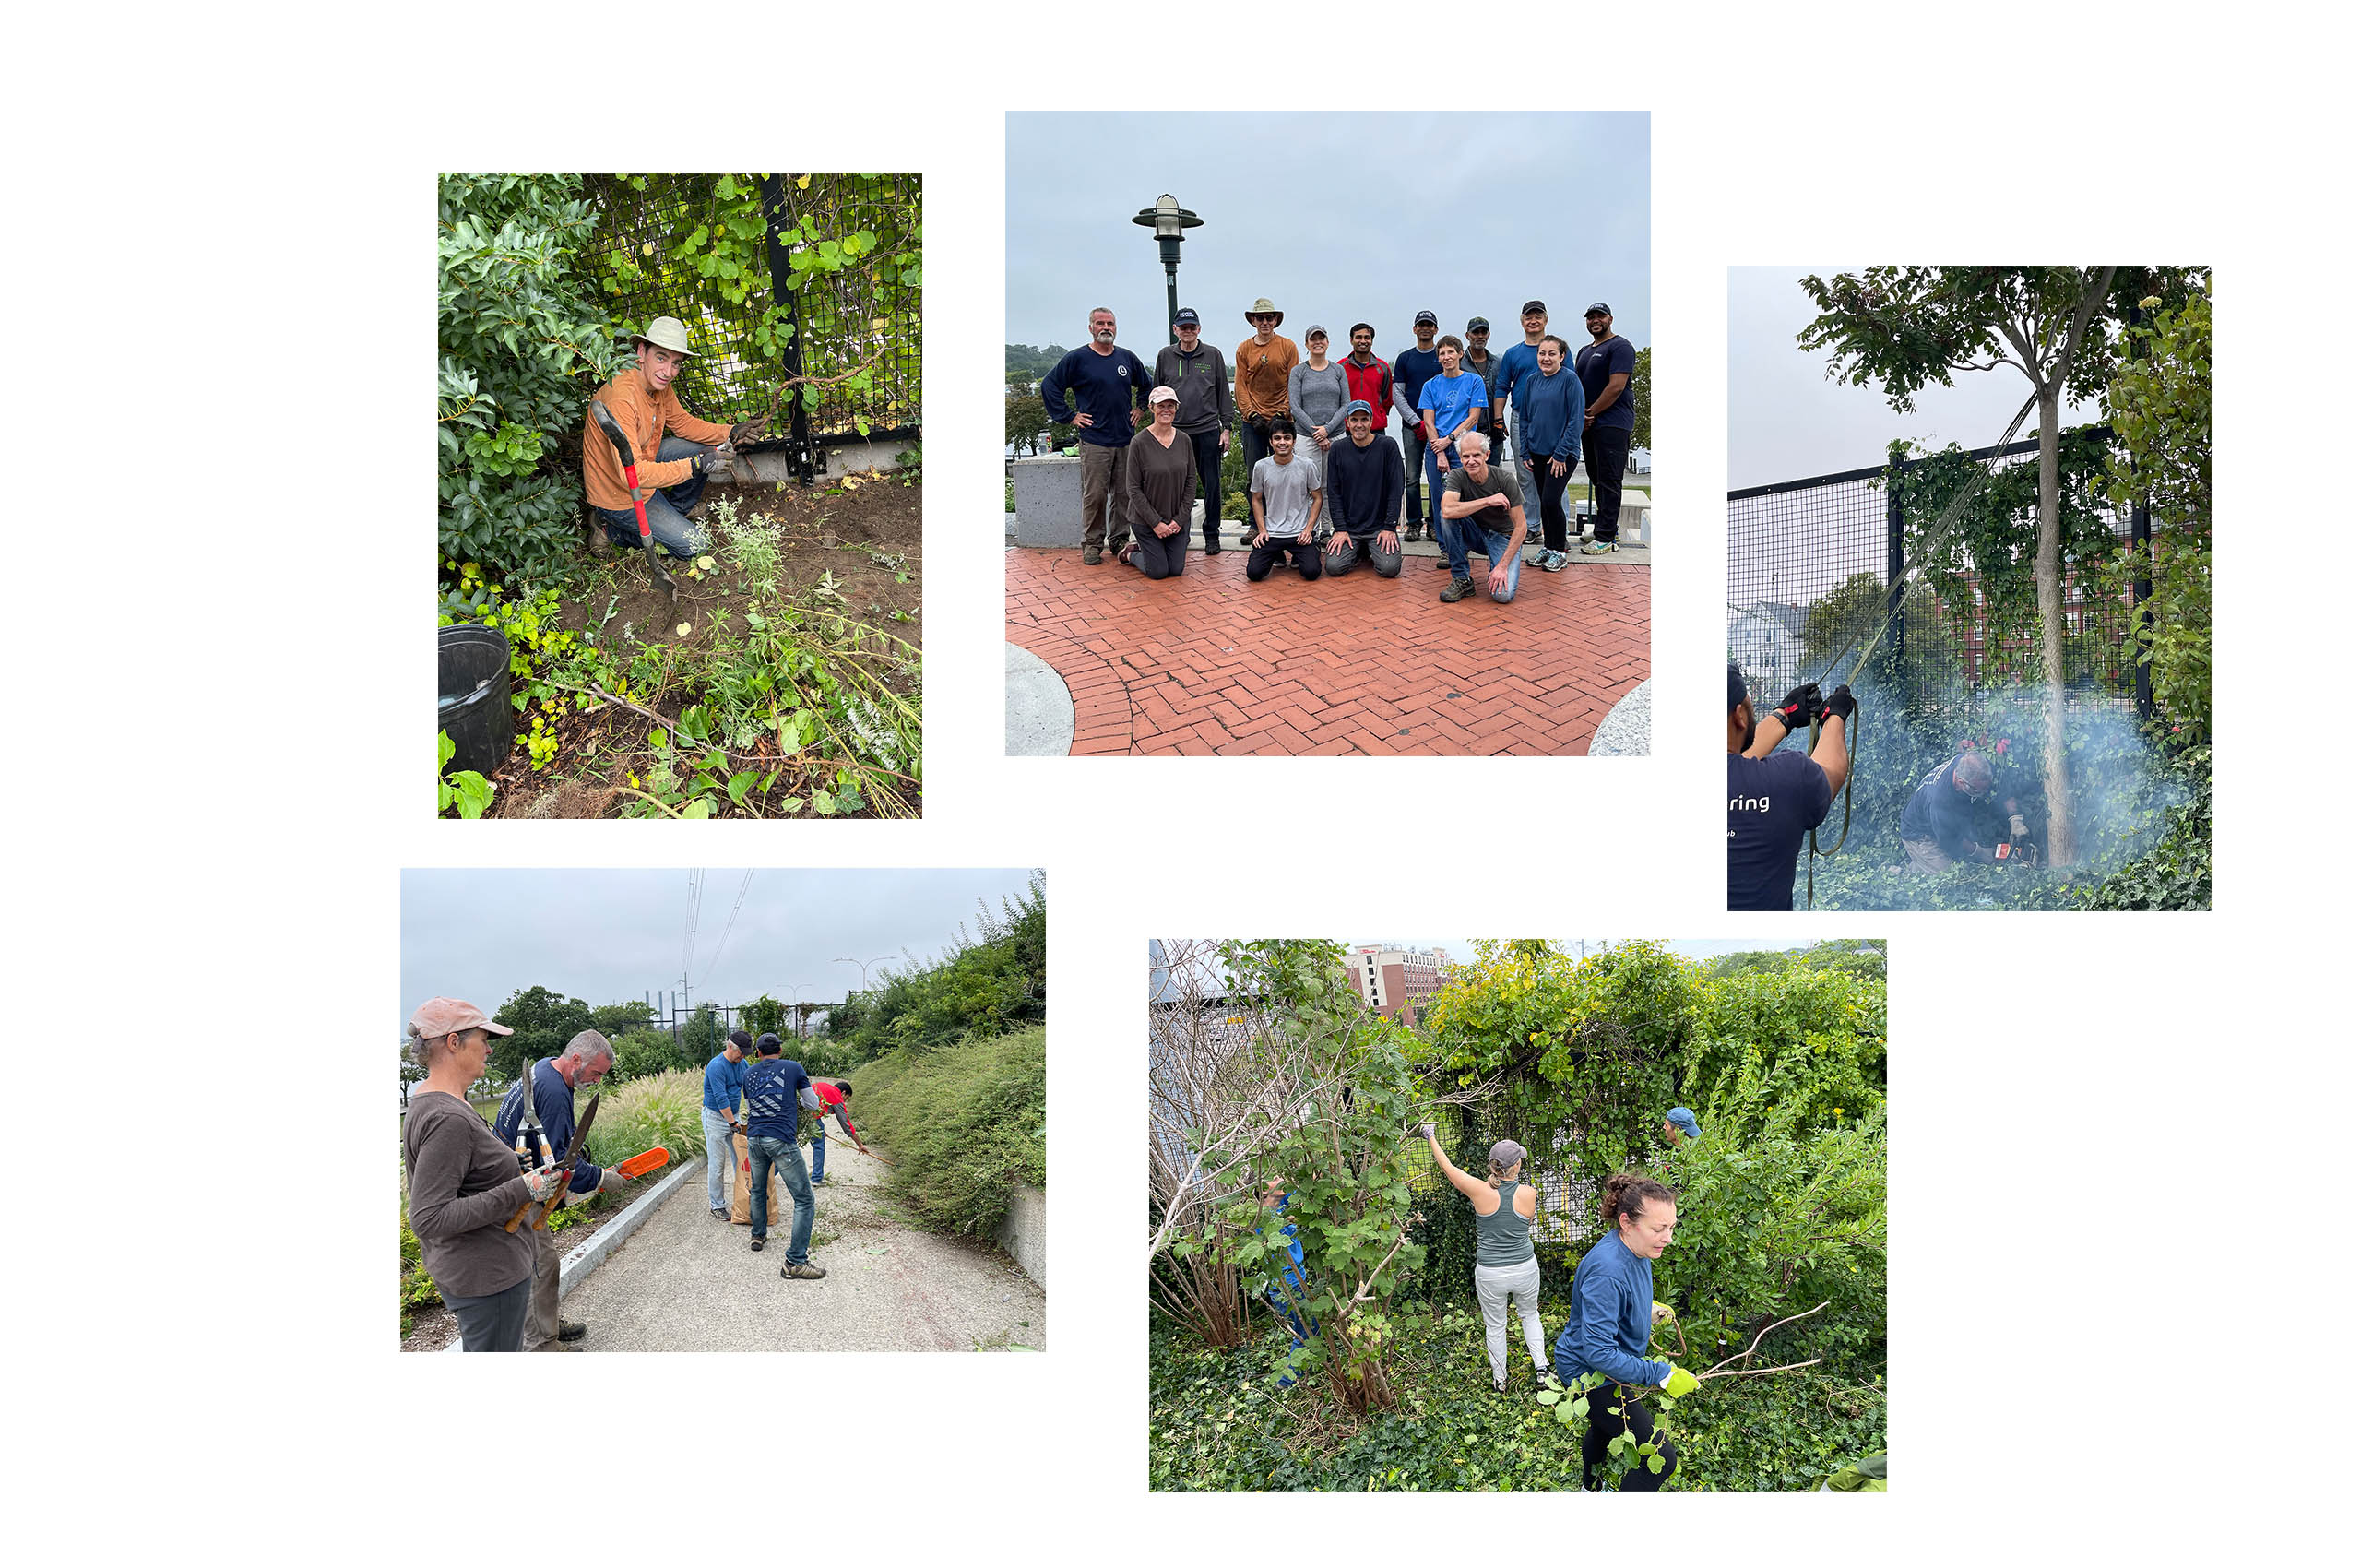 Dassault Systemes Day of Service